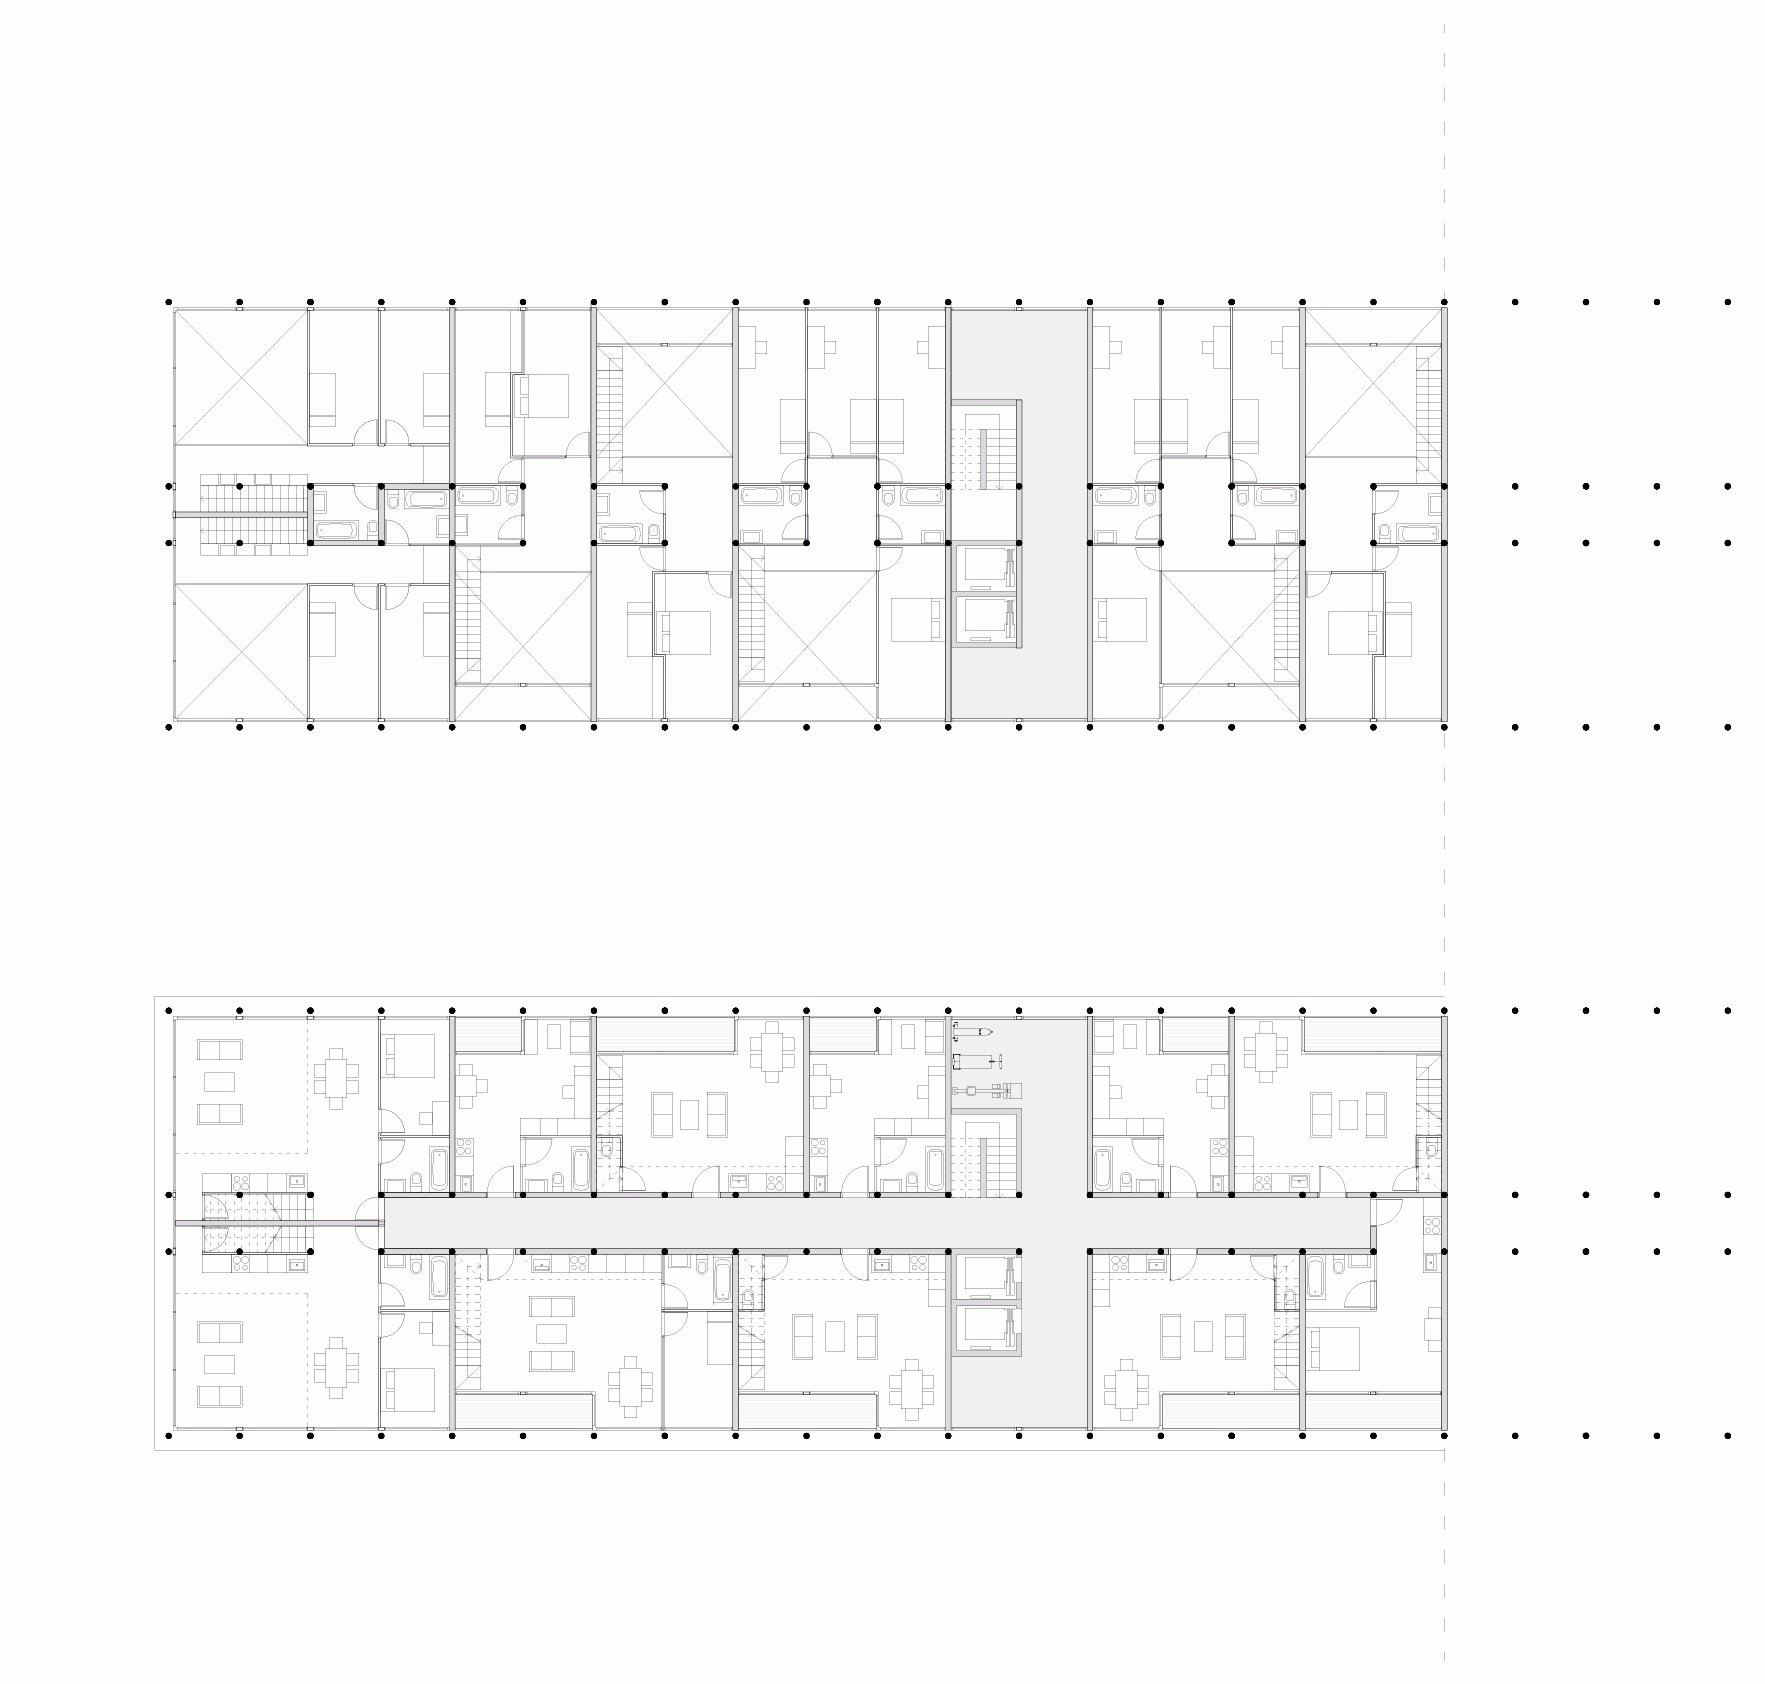 floor plans of floor modules